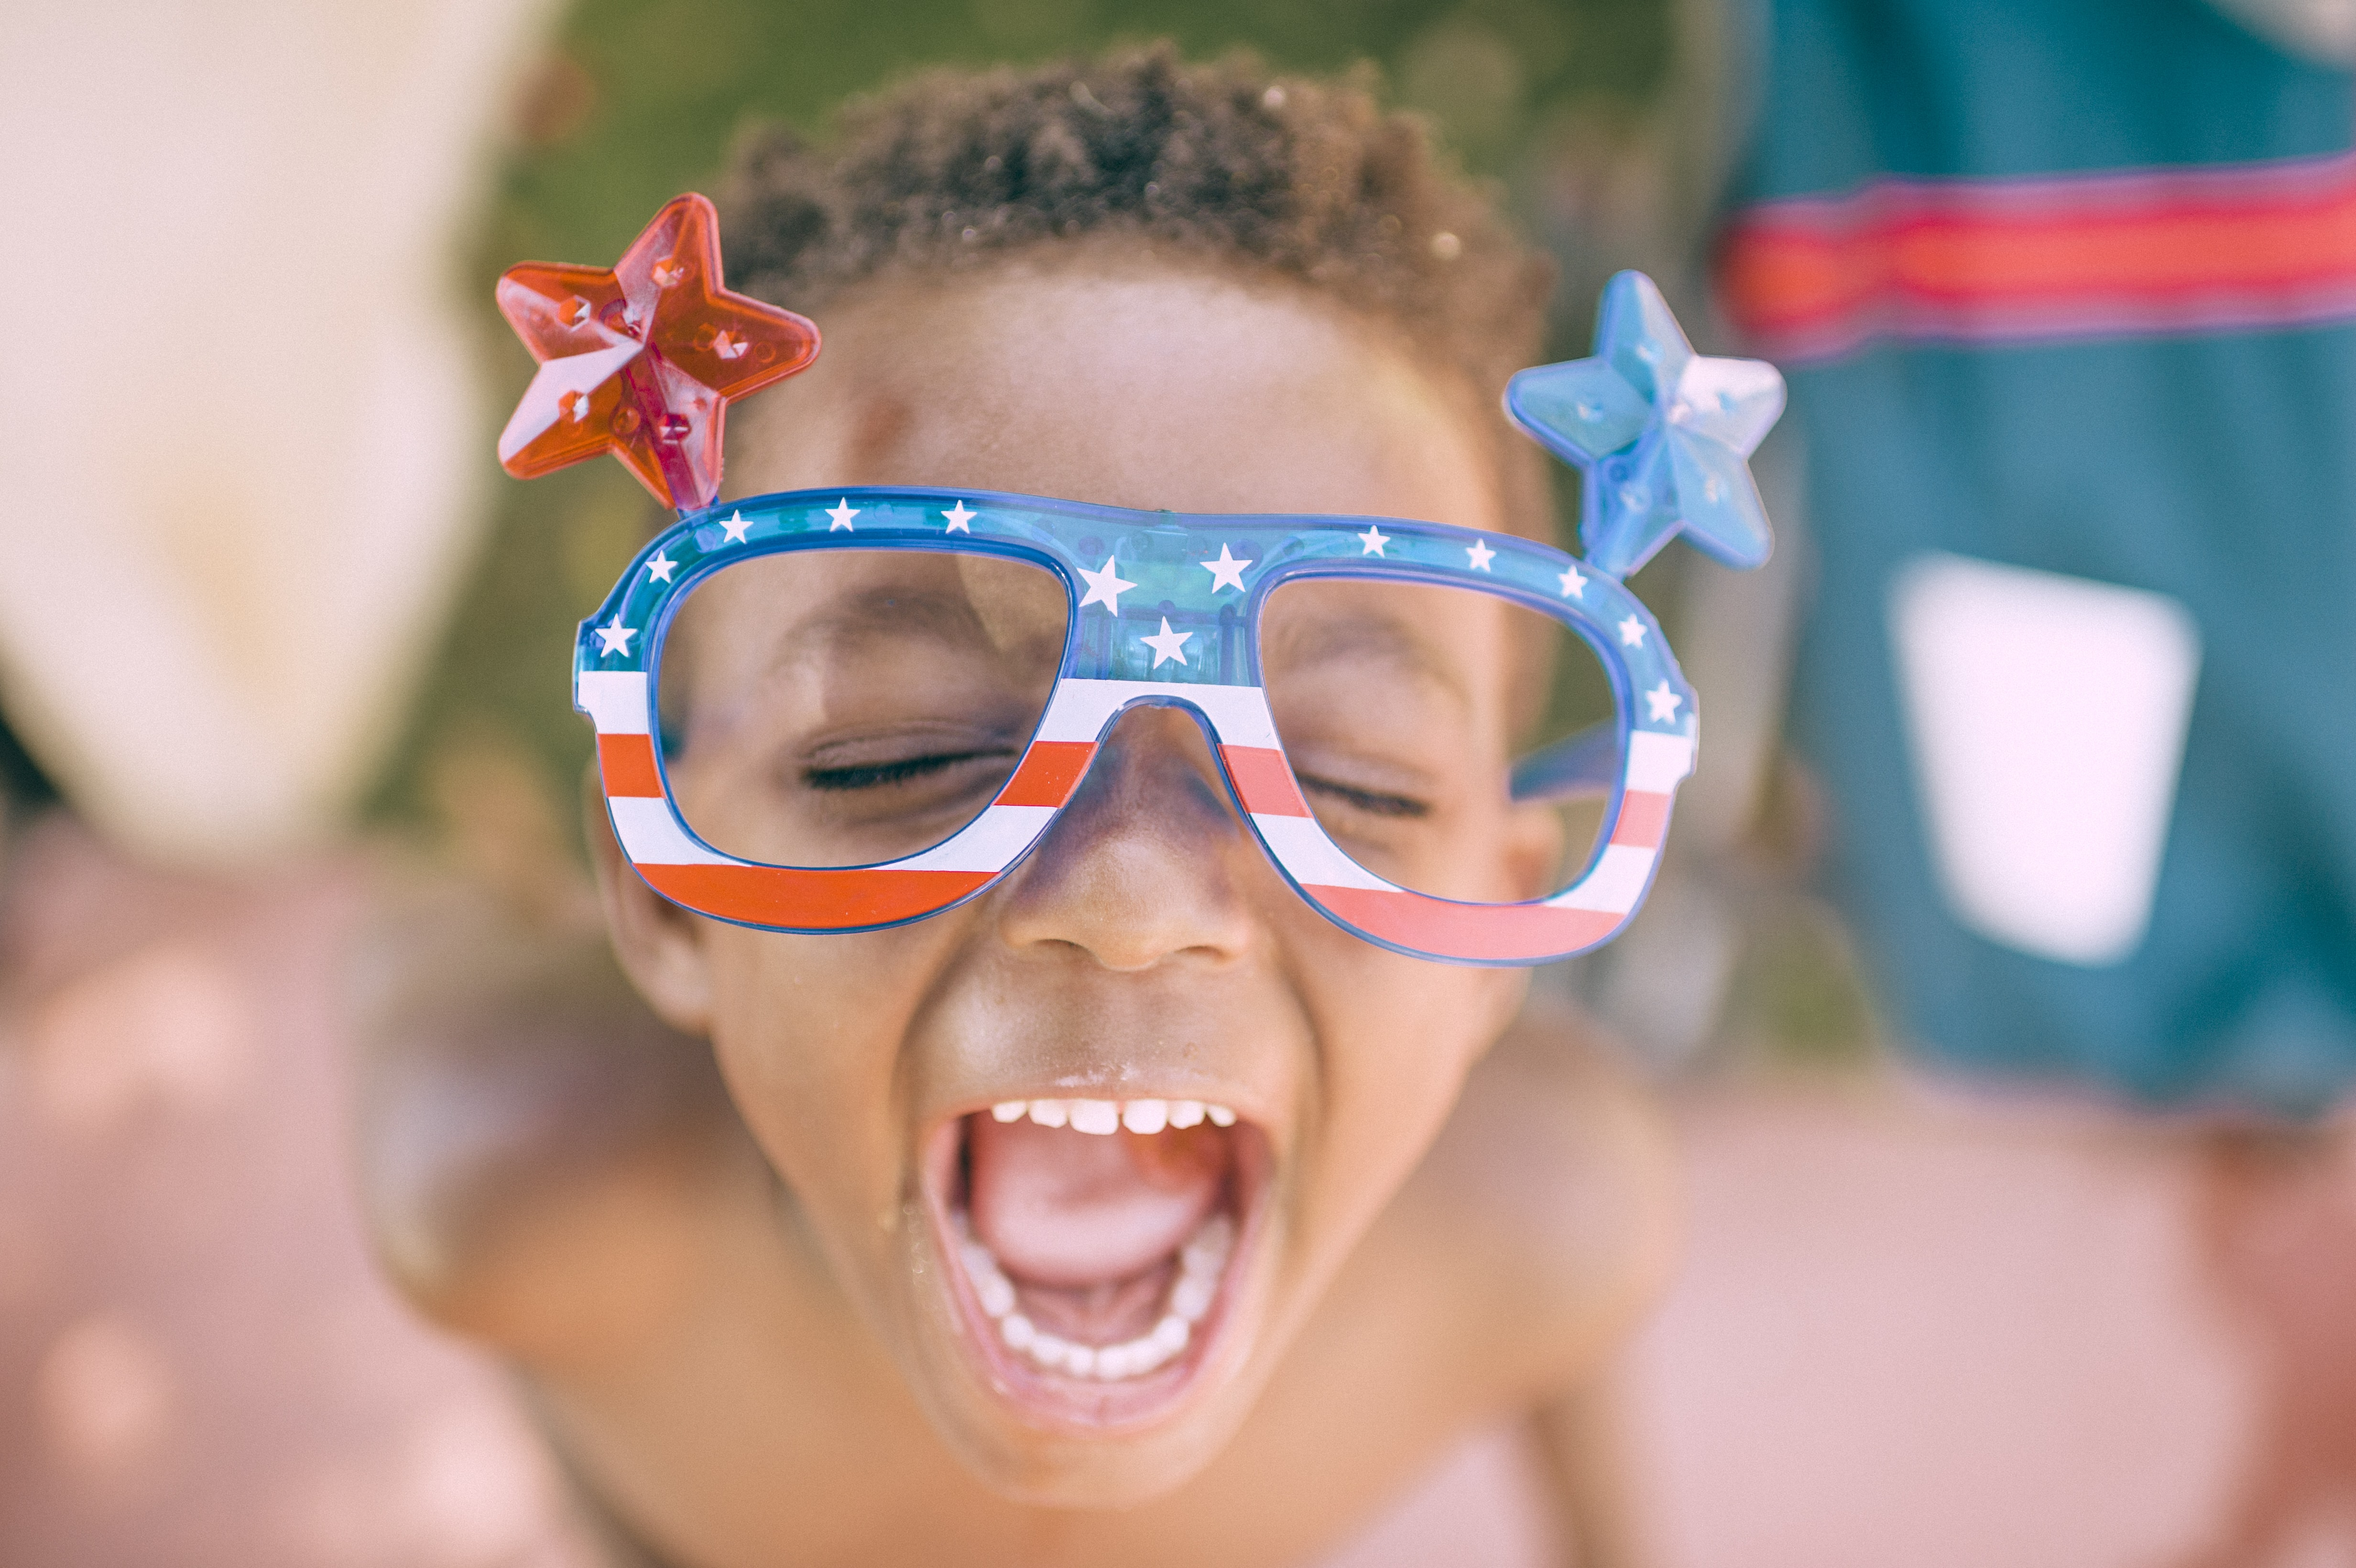 boy wearing American flag print eyeglasses sticking his mouth open